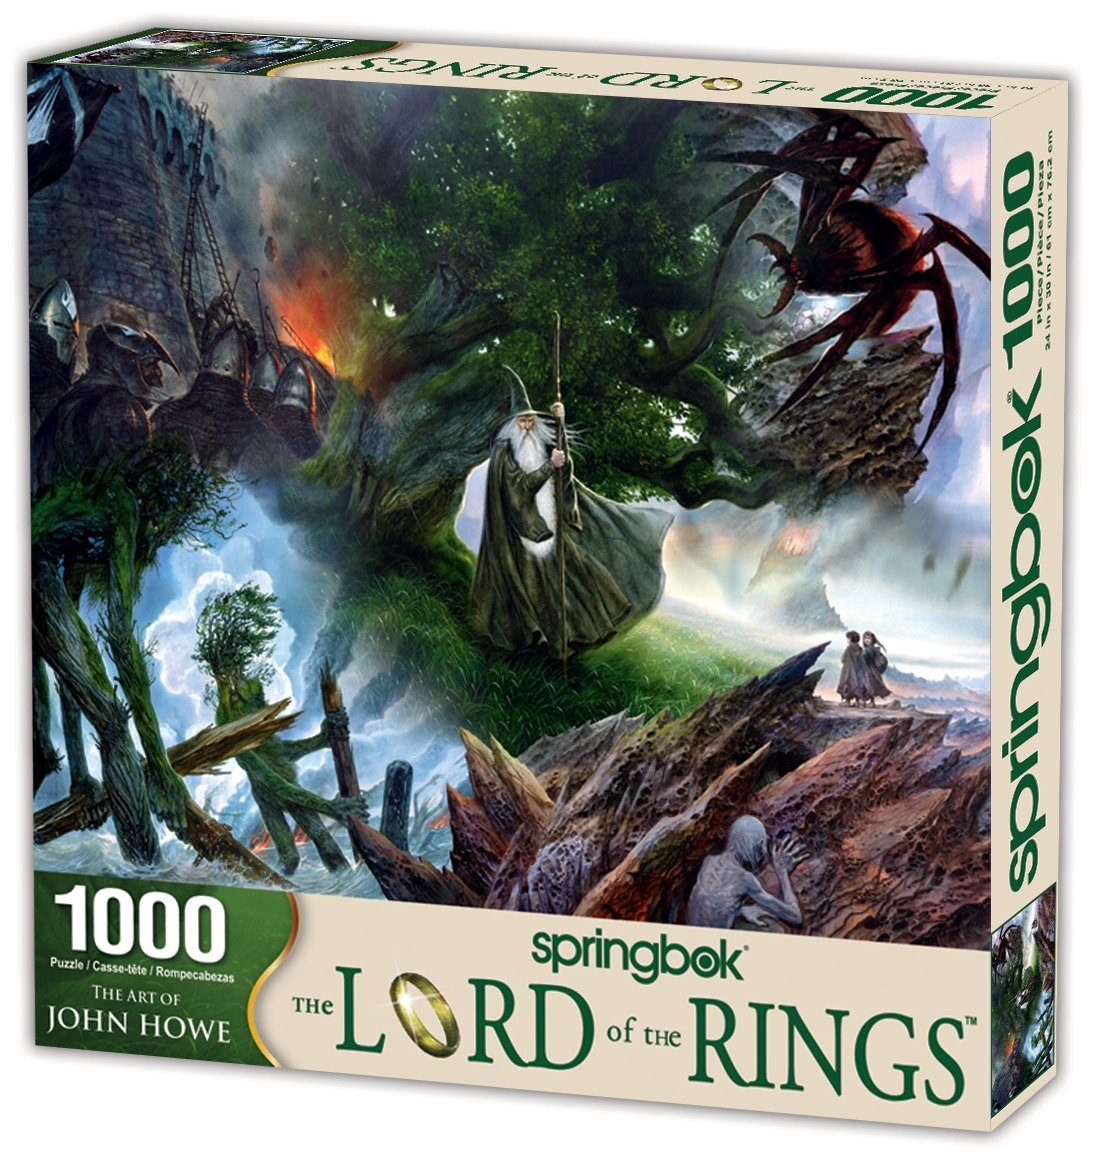 ALLIED PRODUCTS SB1000 HOWE LORD OF THE RINGS